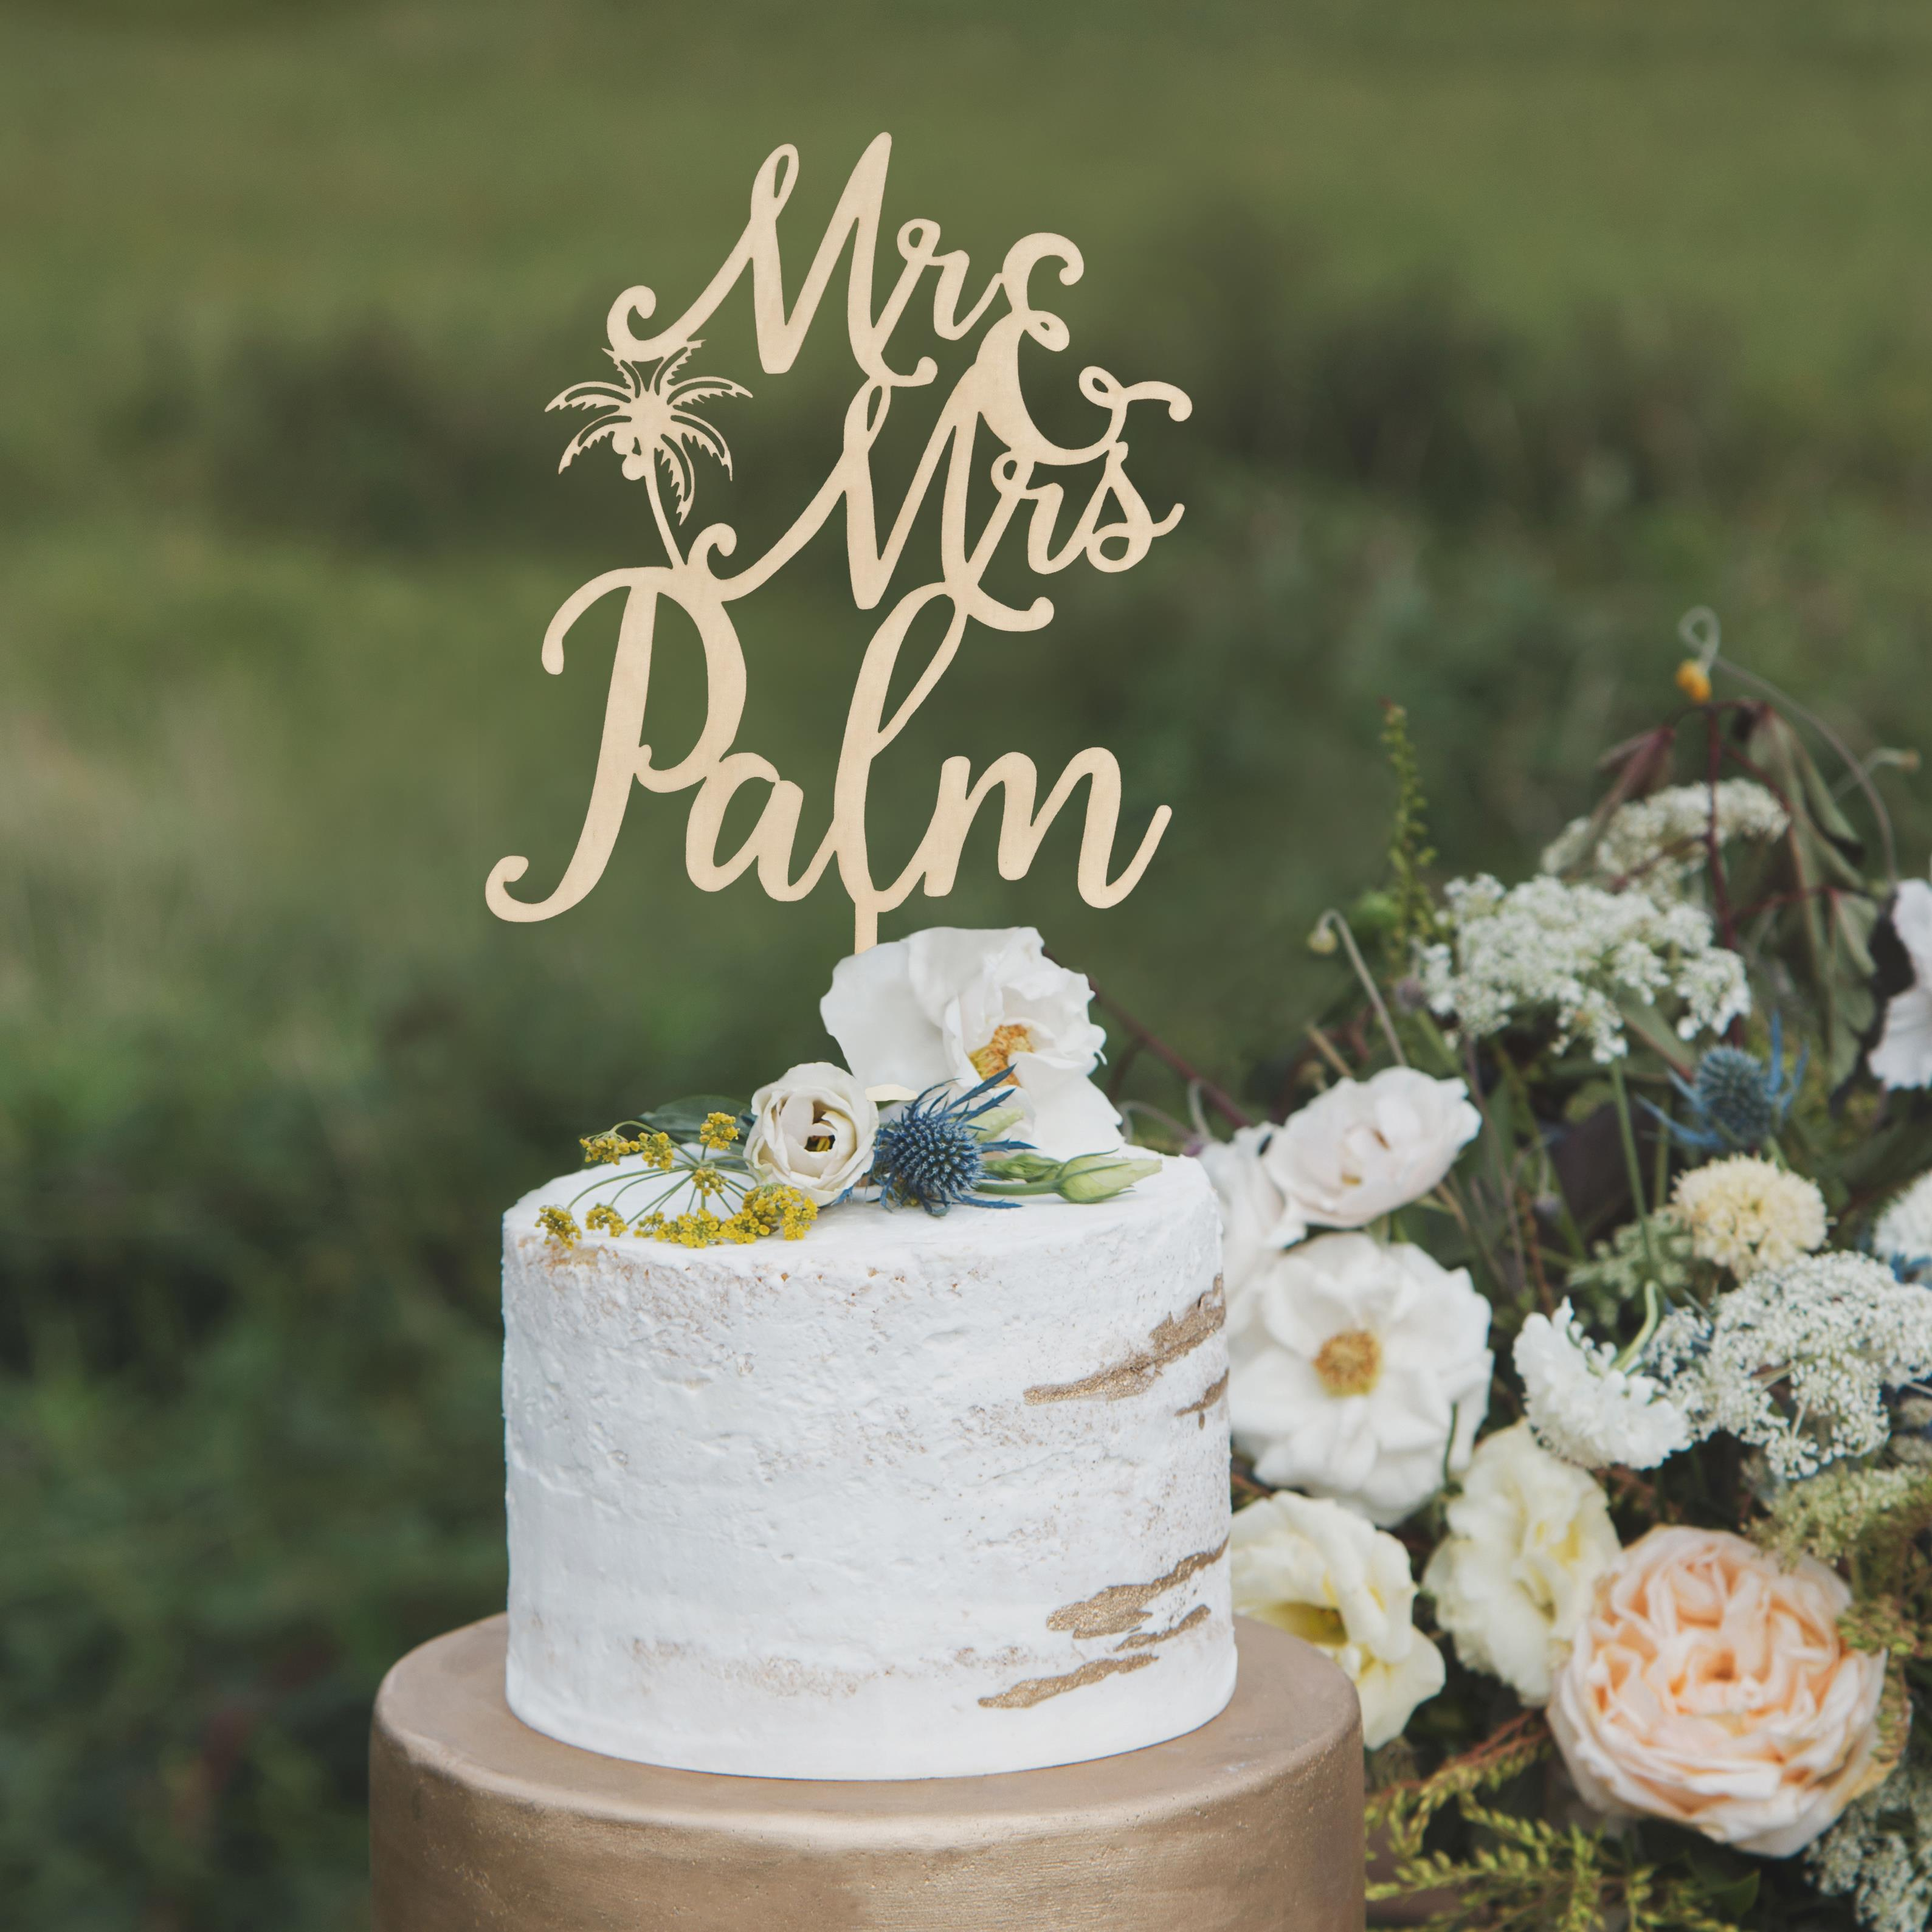 Custom Mr and Mrs Tropical wedding cake topper by Thistle and Lace